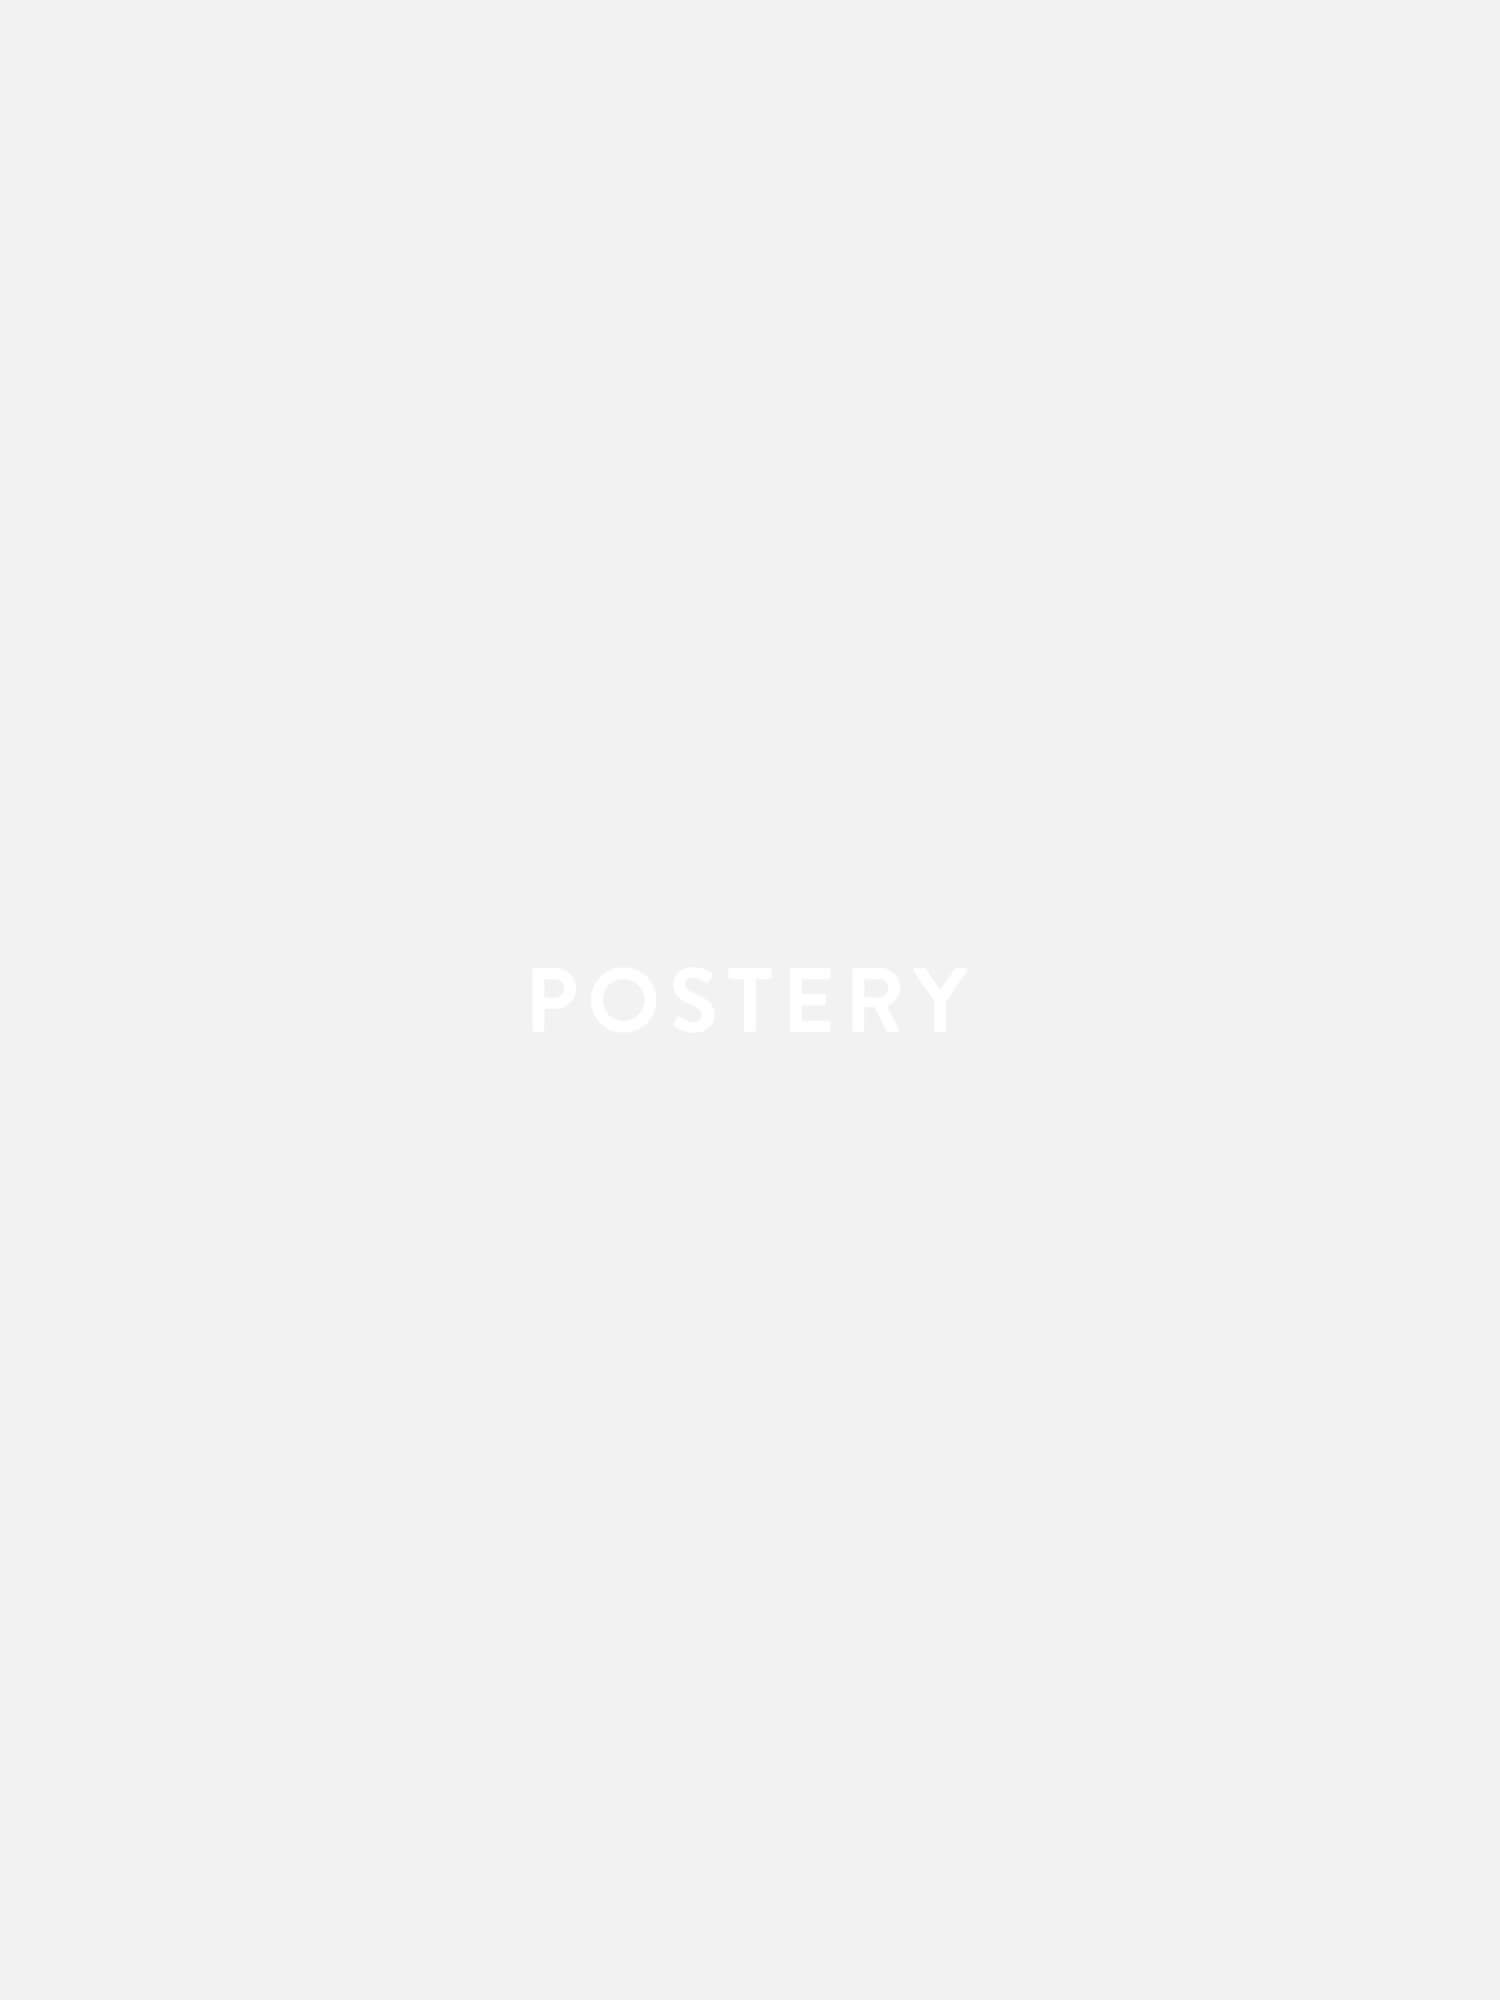 Matisse Orange Cutout Poster